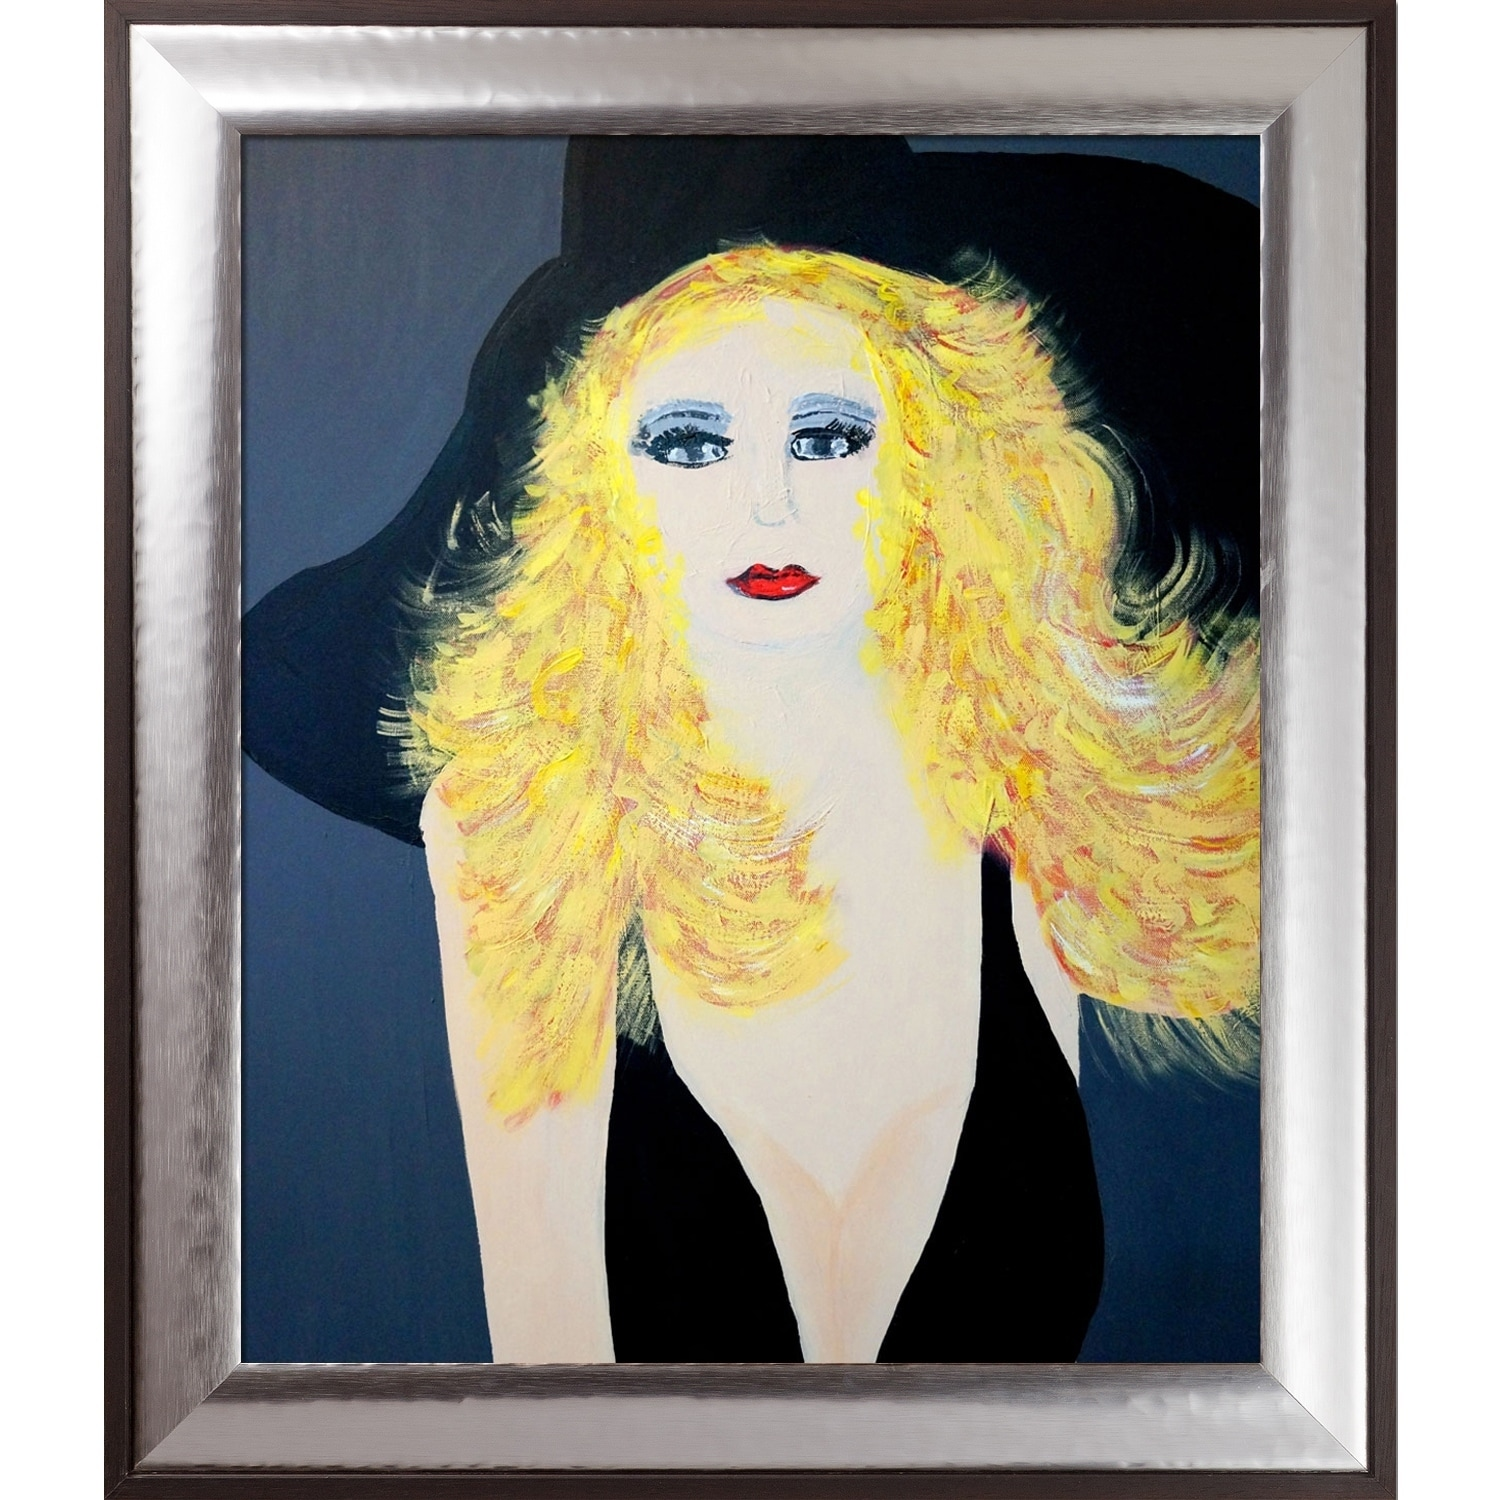 Artistbe By Overstockart I Am Blonde By Nora Shepley With Steel Natural Wood Magnesium Frame Canvas Wall Art 29 25 X 25 25 On Sale Overstock 28495293